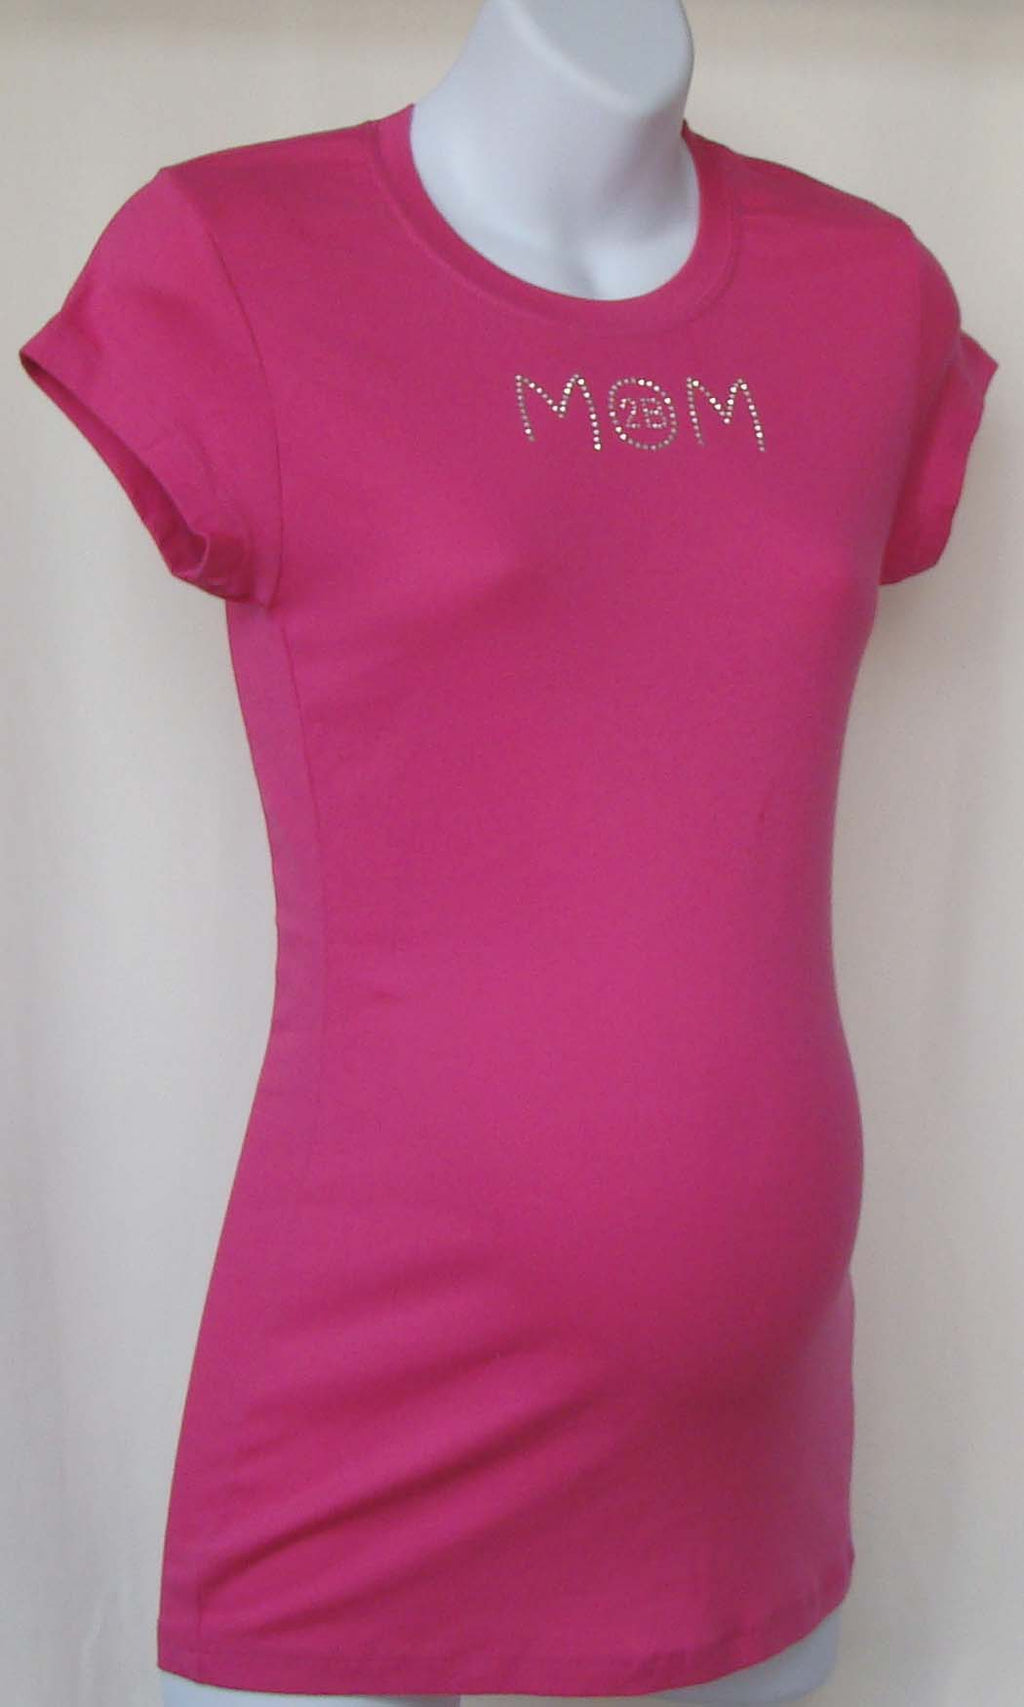 Beyond Maternity 'Mom 2B'  Fuschia T-Shirt